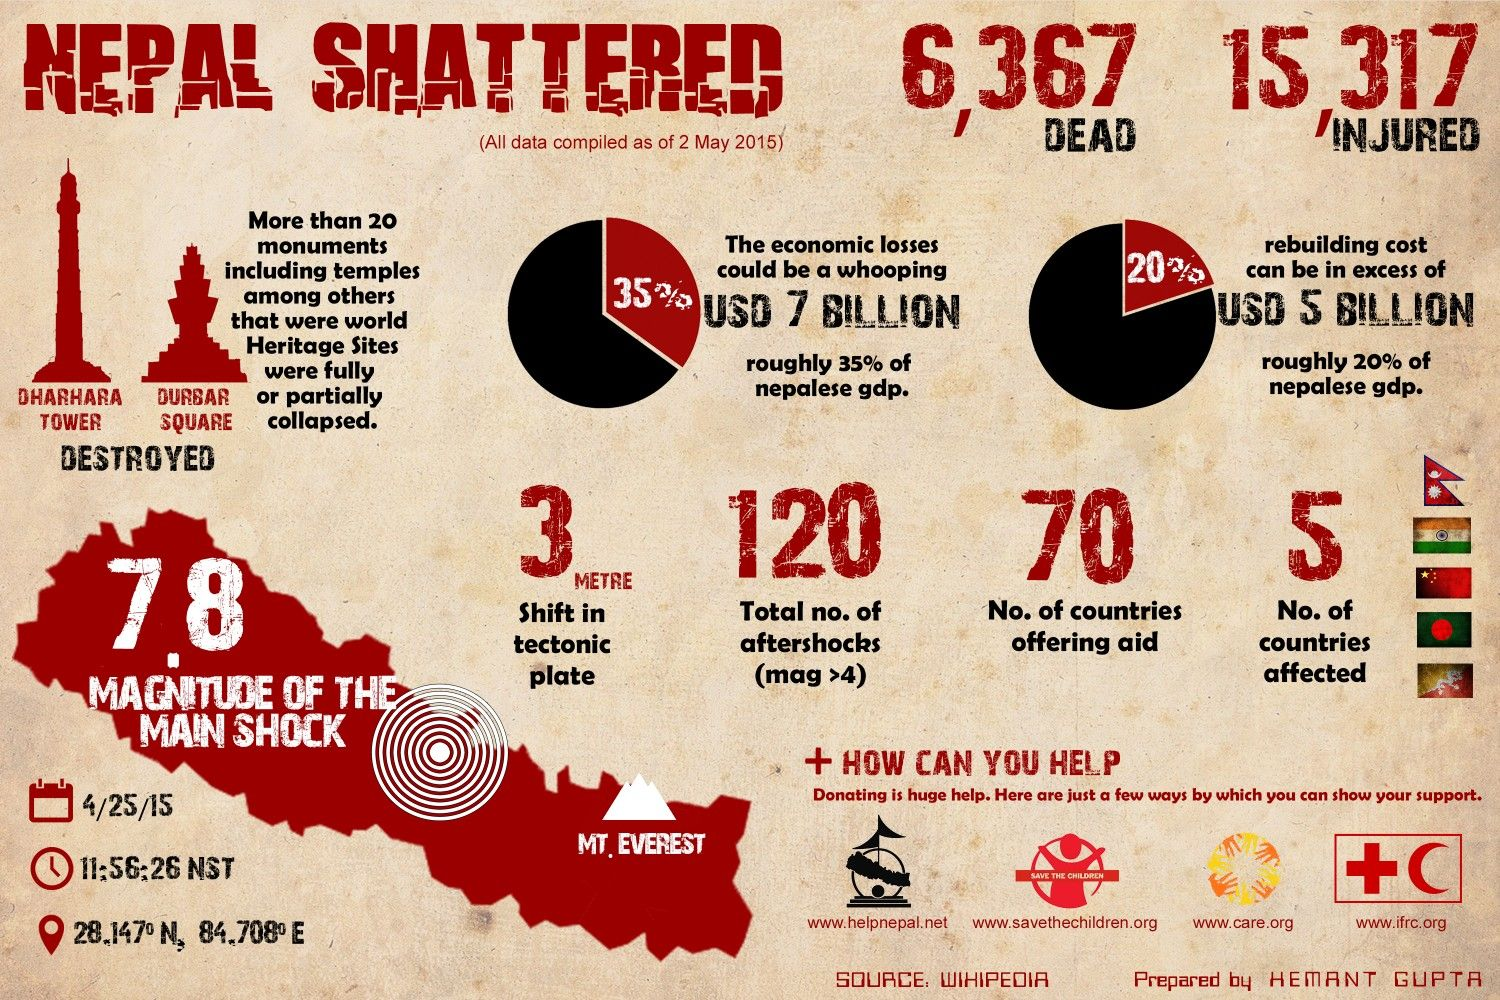 Nepal Earthquake in a Nutshell Infographic | Useful Classroom Images